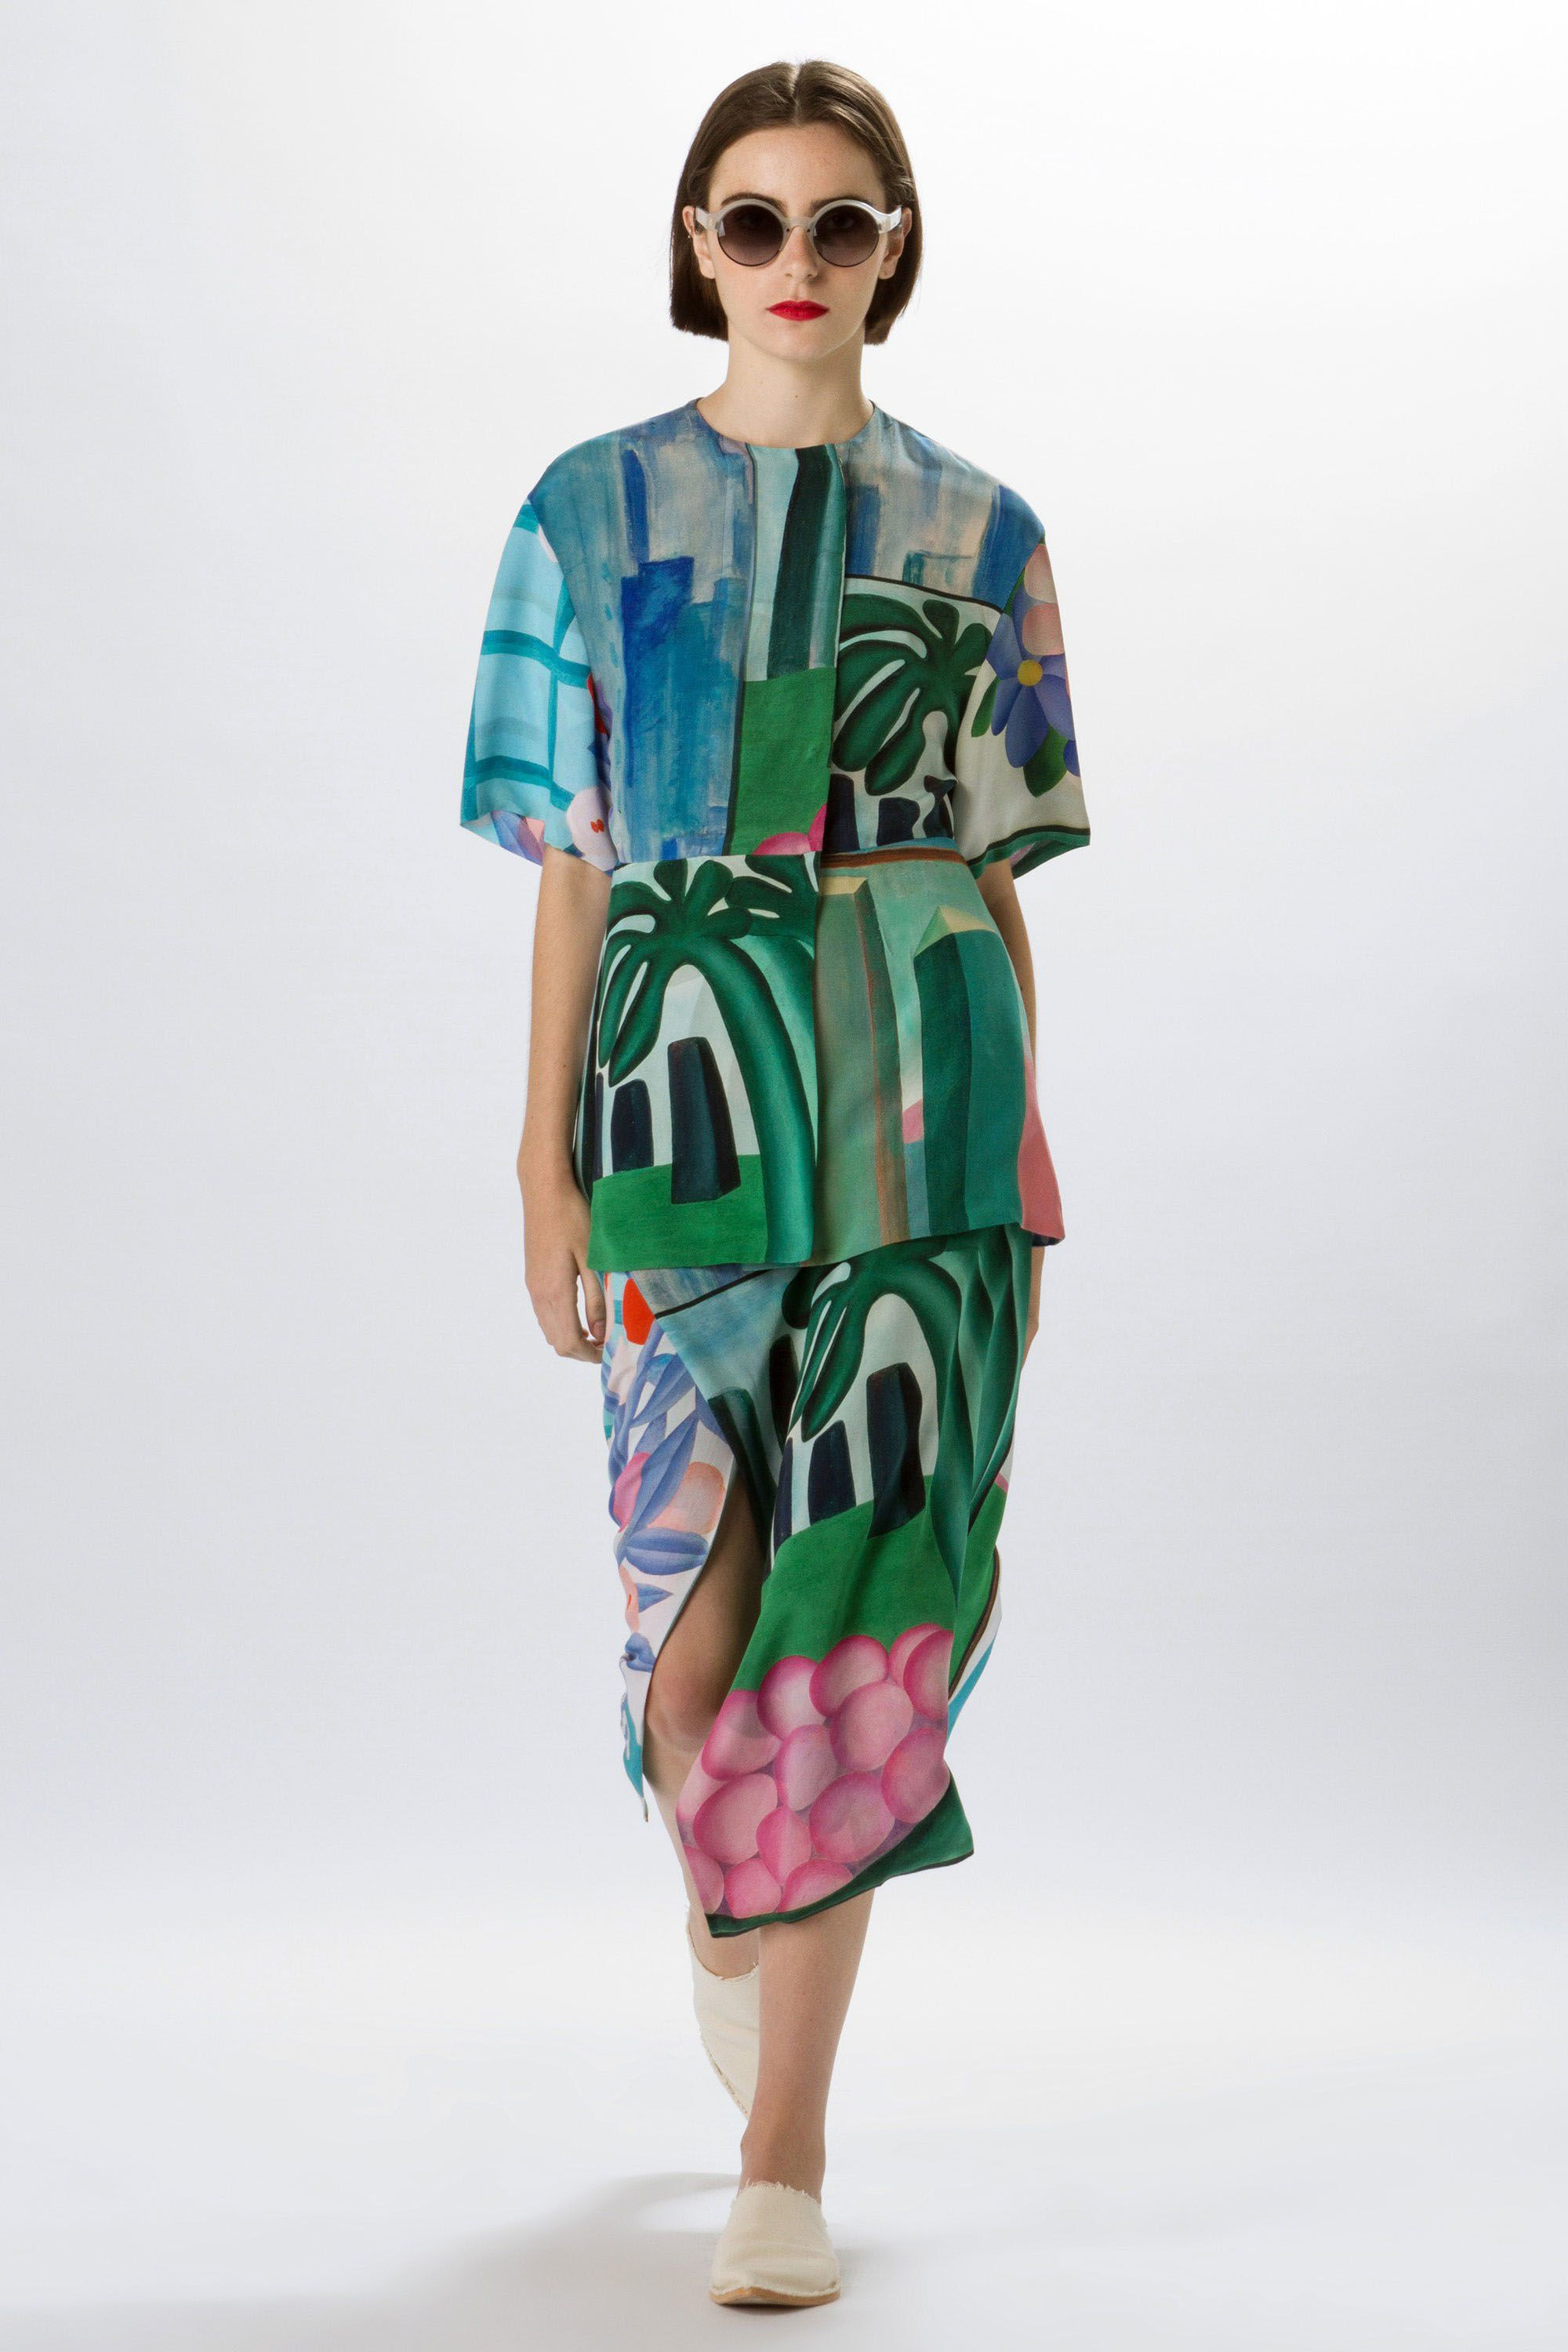 Sustainable Fashion High End Designers Using Recycled Fabrics And Ethical Manufacturing